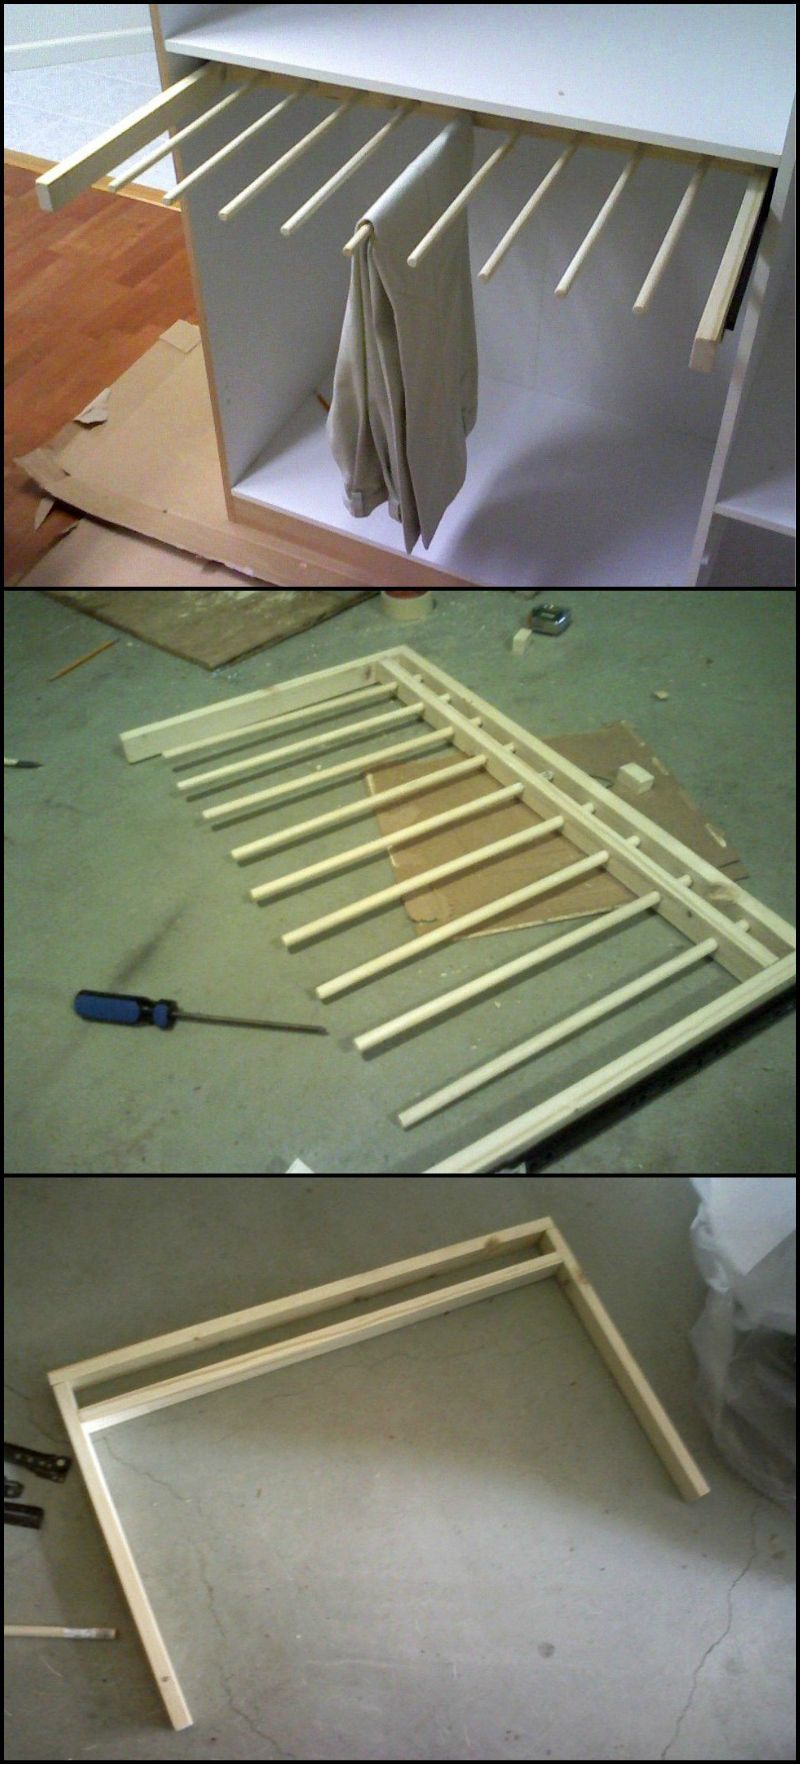 How To Build A Sliding Pants Rack Http Theownerbuildernetwork Co Hd1a